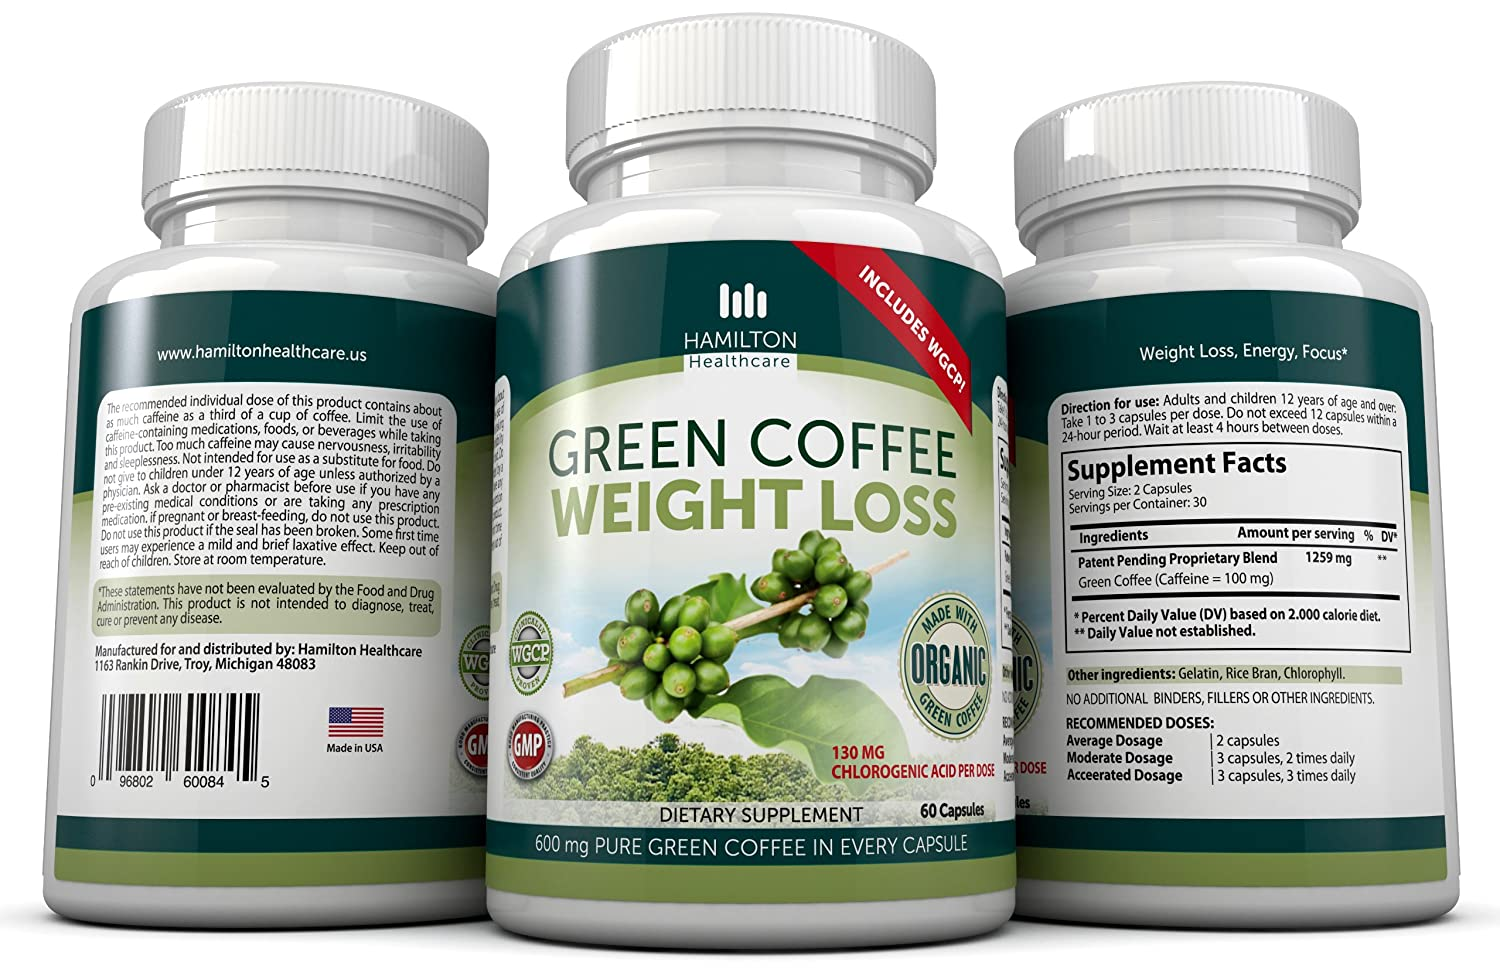 garcinia and green coffee bean dosage